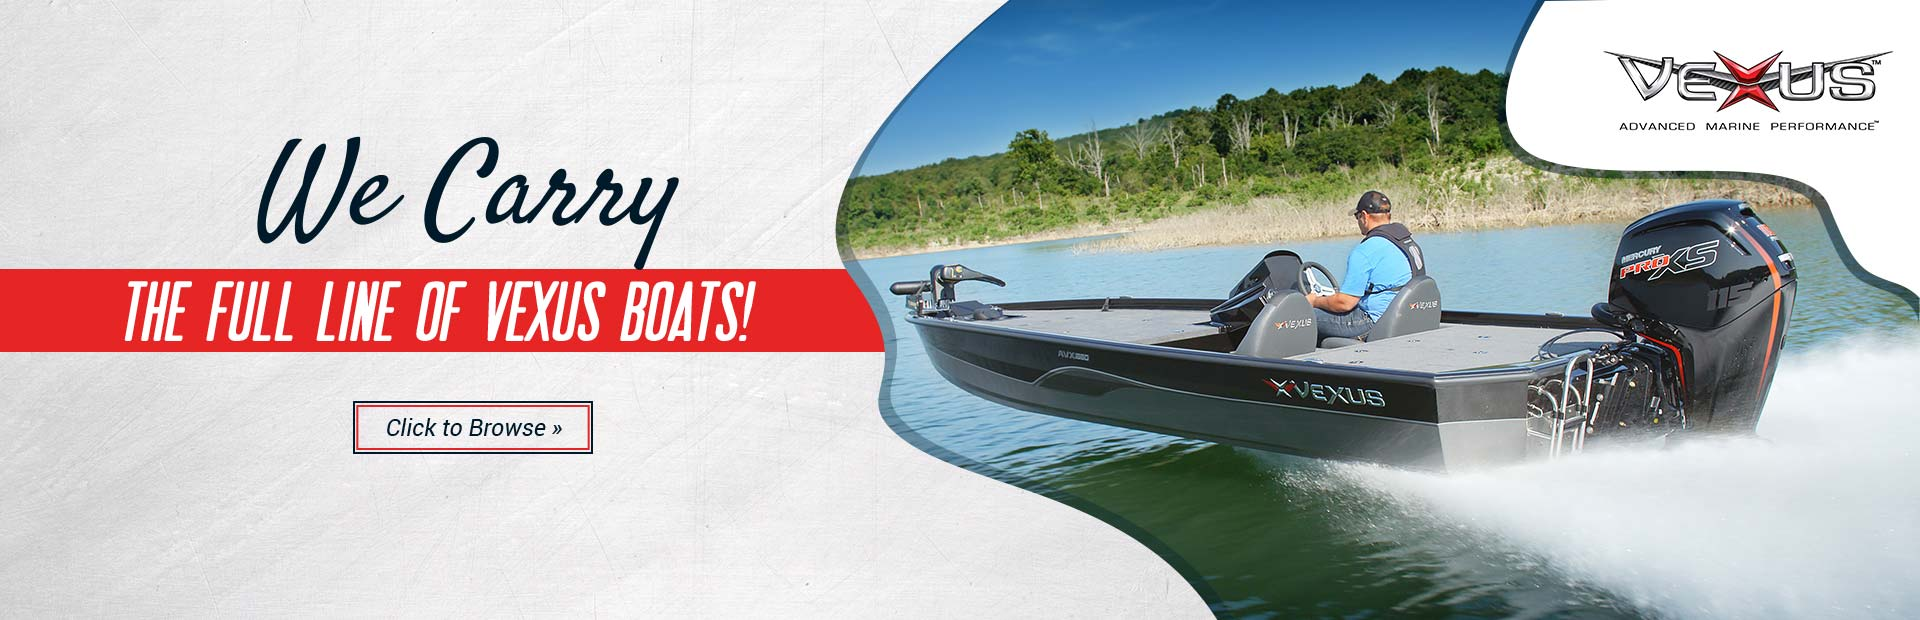 We carry the full line of Vexus boats!